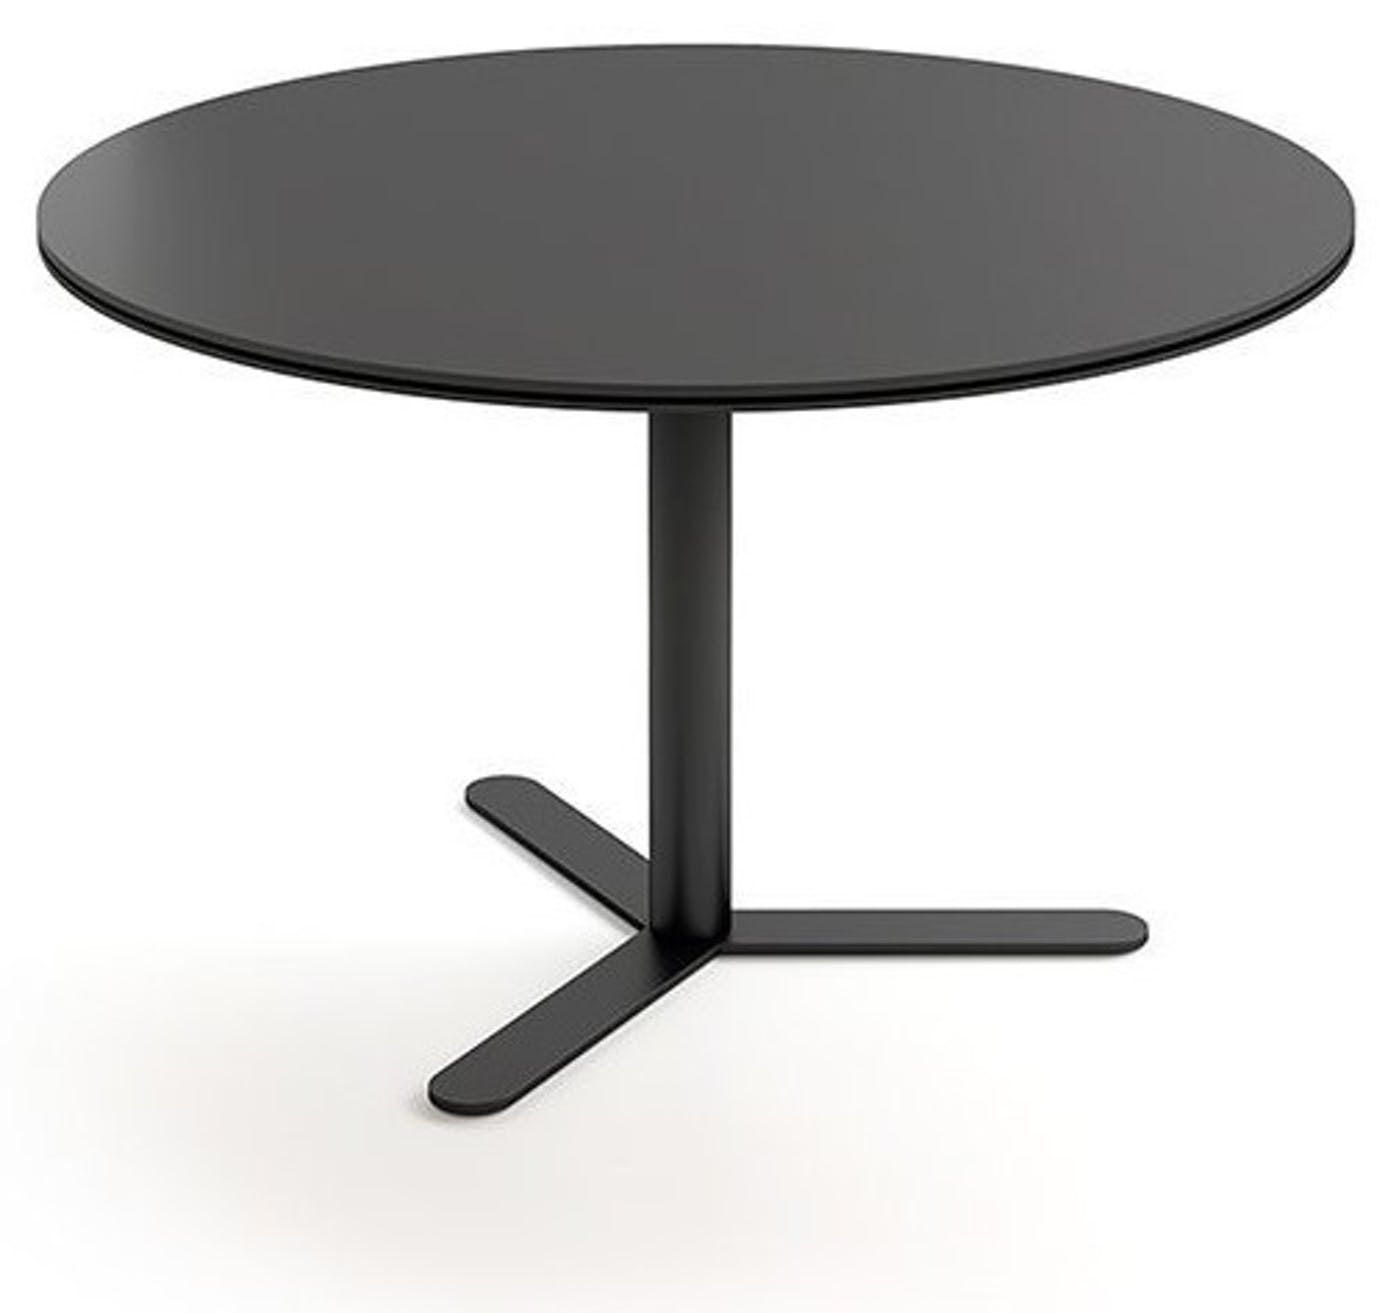 Aspa Low Table By Viccarbe Now Available At Haute Living Low